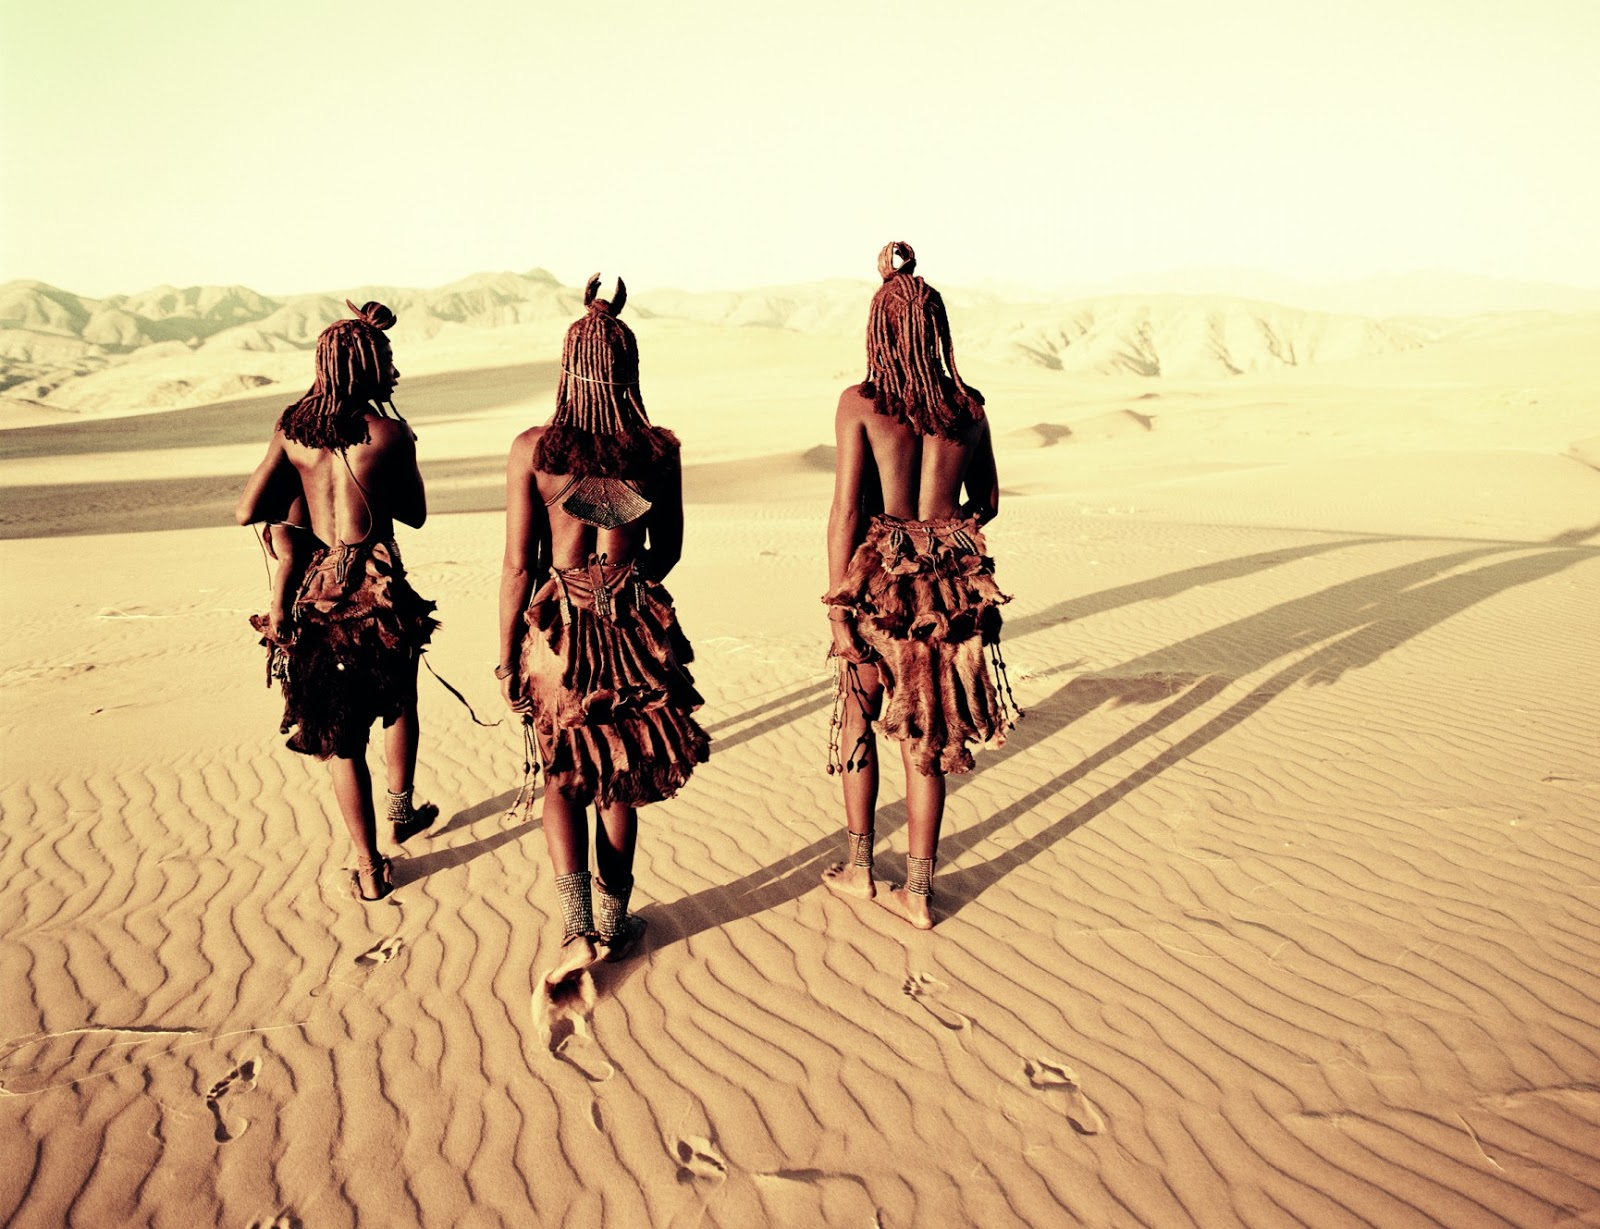 Stunning Photographs Of The World's Last Indigenous Tribes - MYSTERIOUS HARTMANN VALLEY